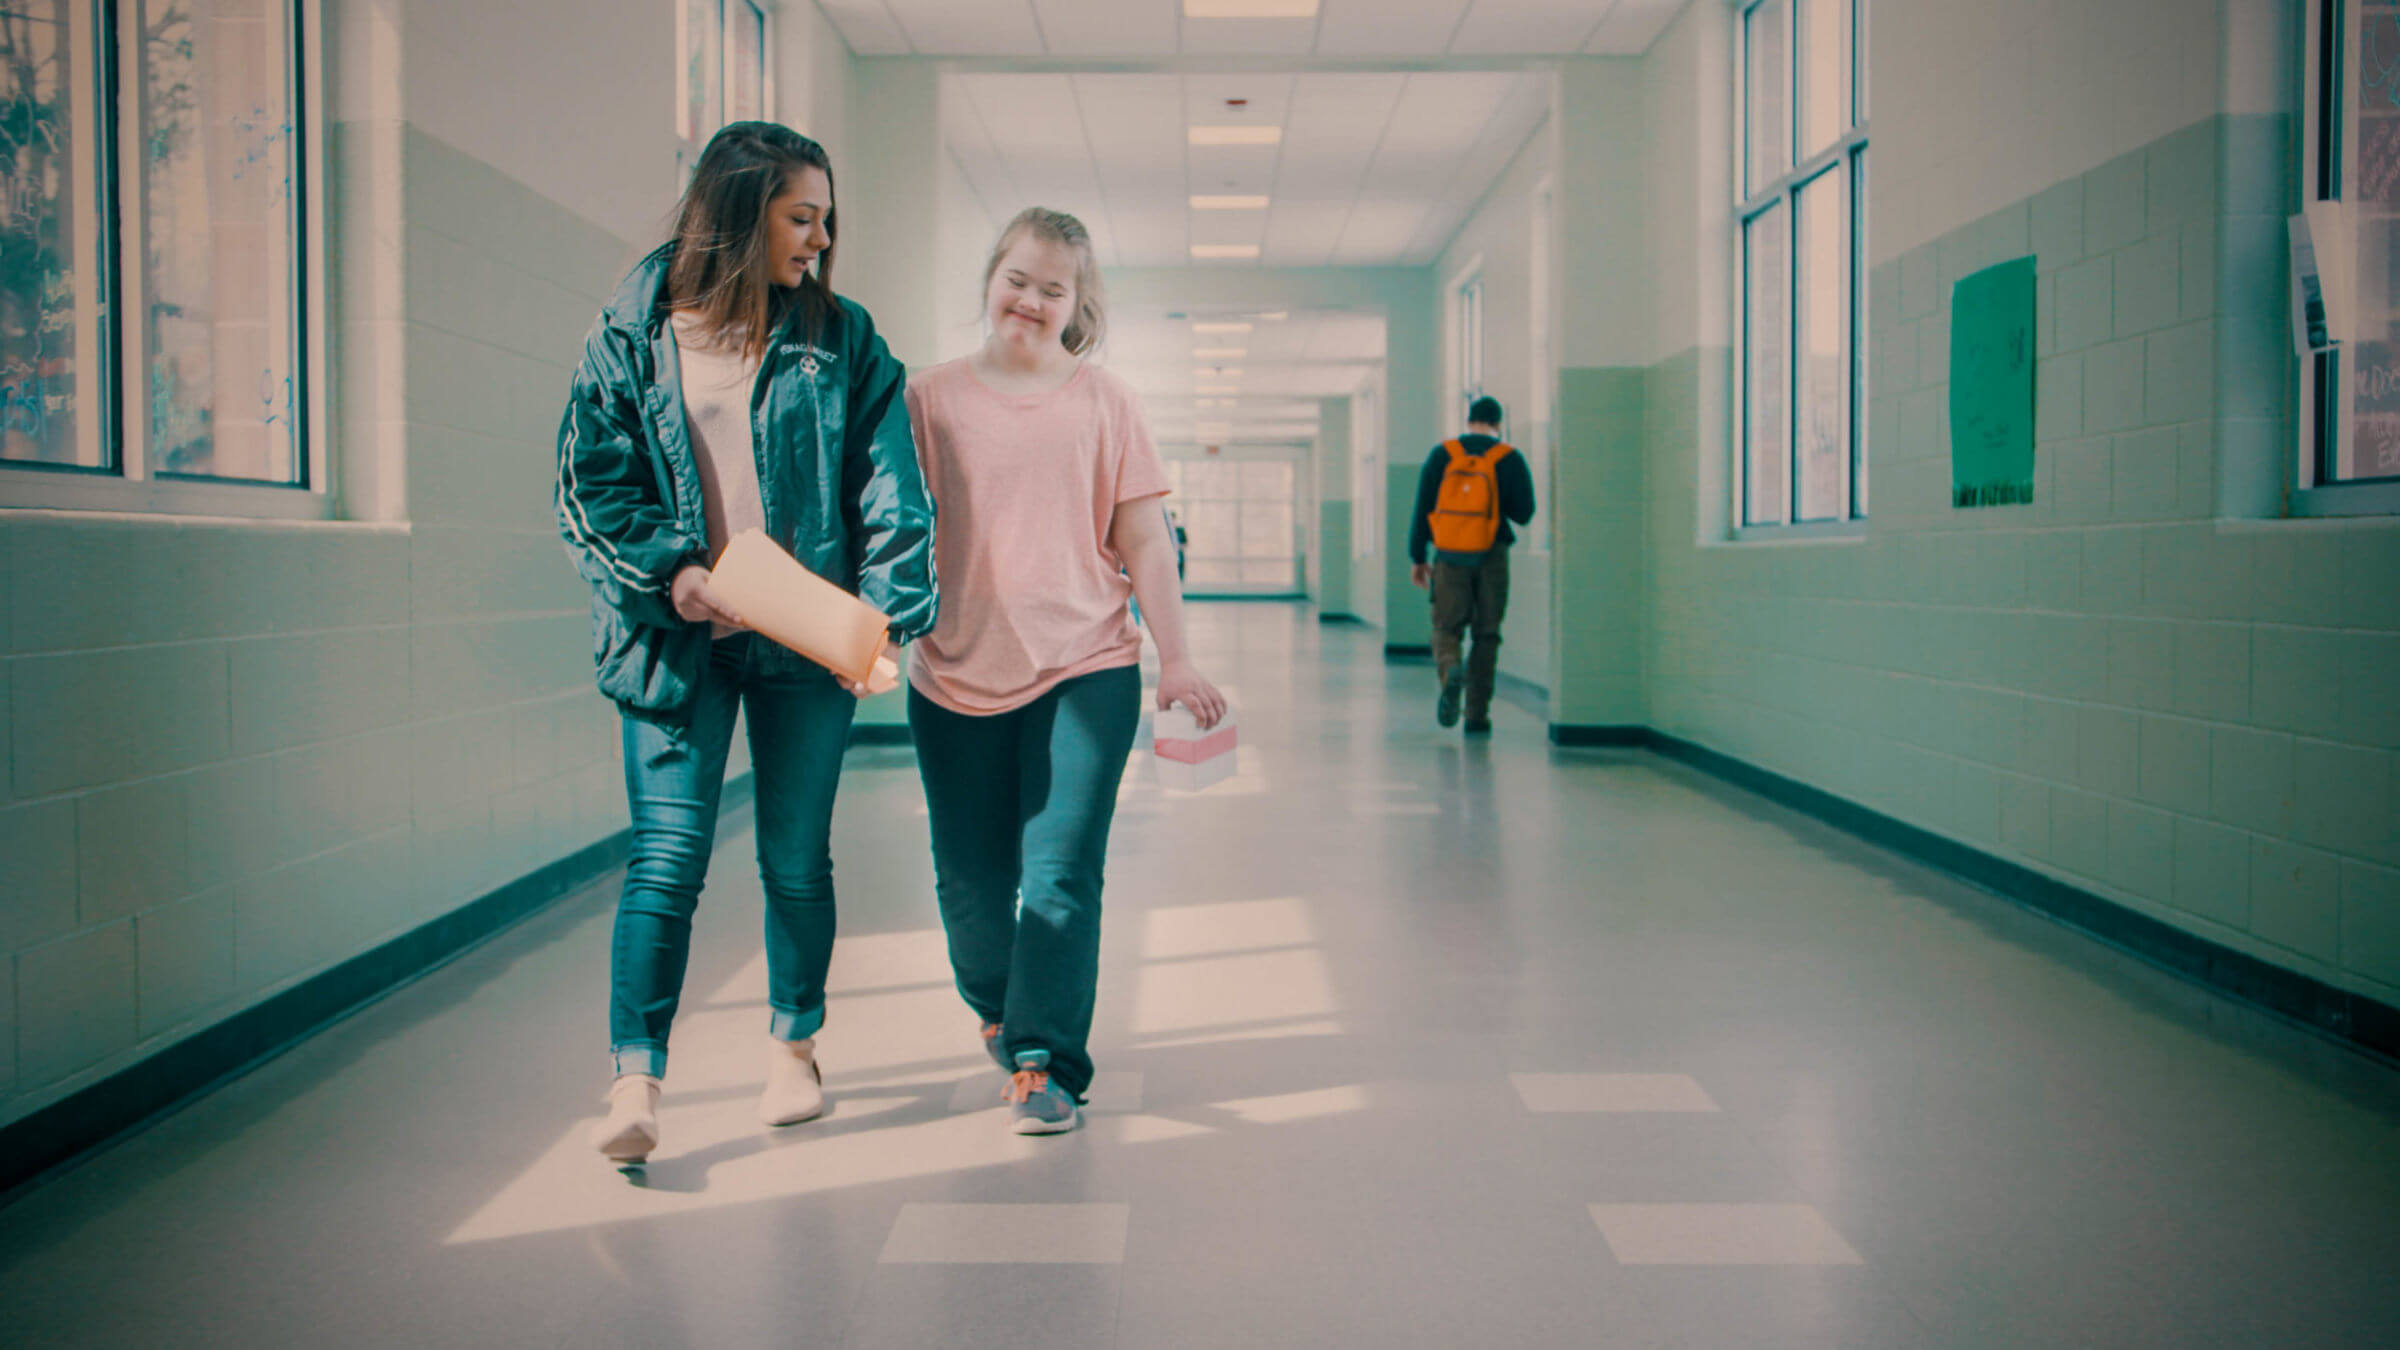 Emily and Kate walking down a school hallway.